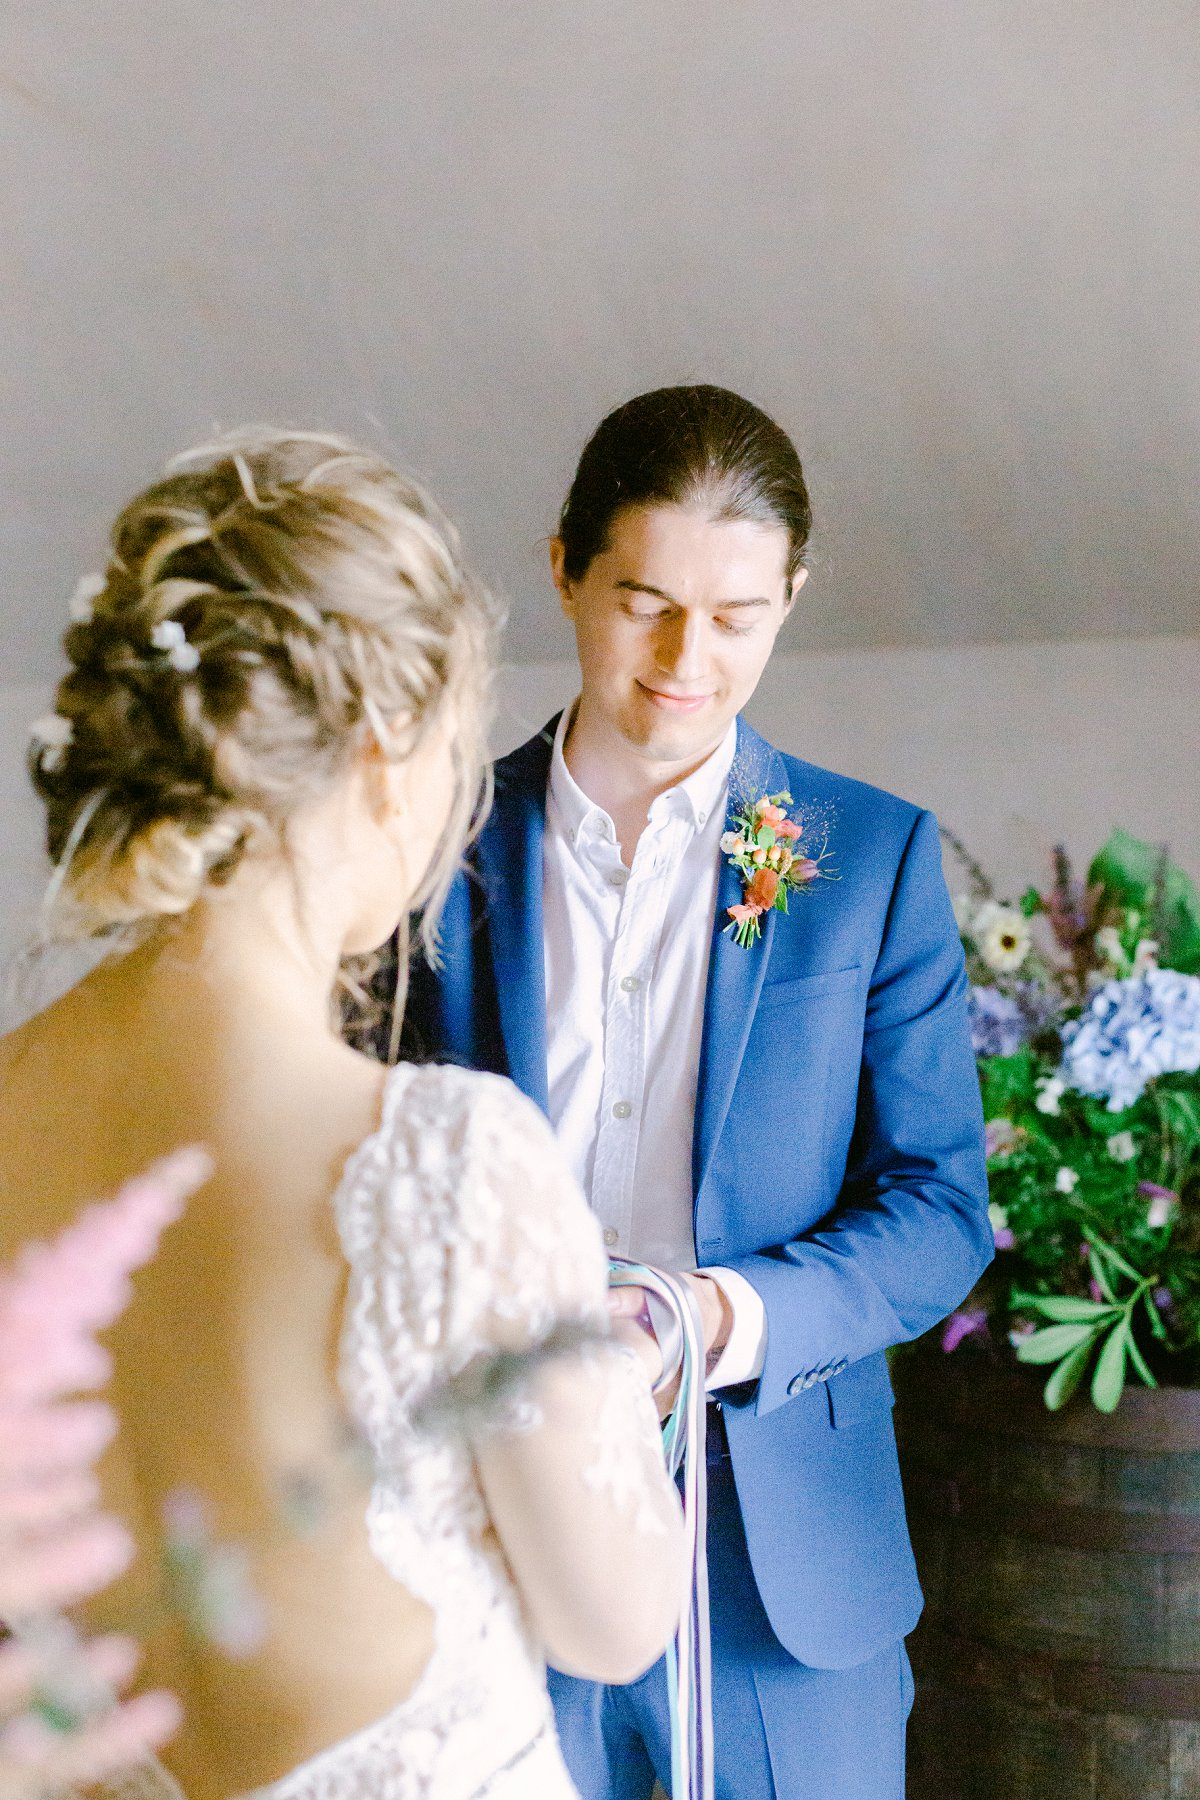 A Styled Wedding Shoot at Town Head Estate Windermere (c) Ailsa Reeve Photography (27)